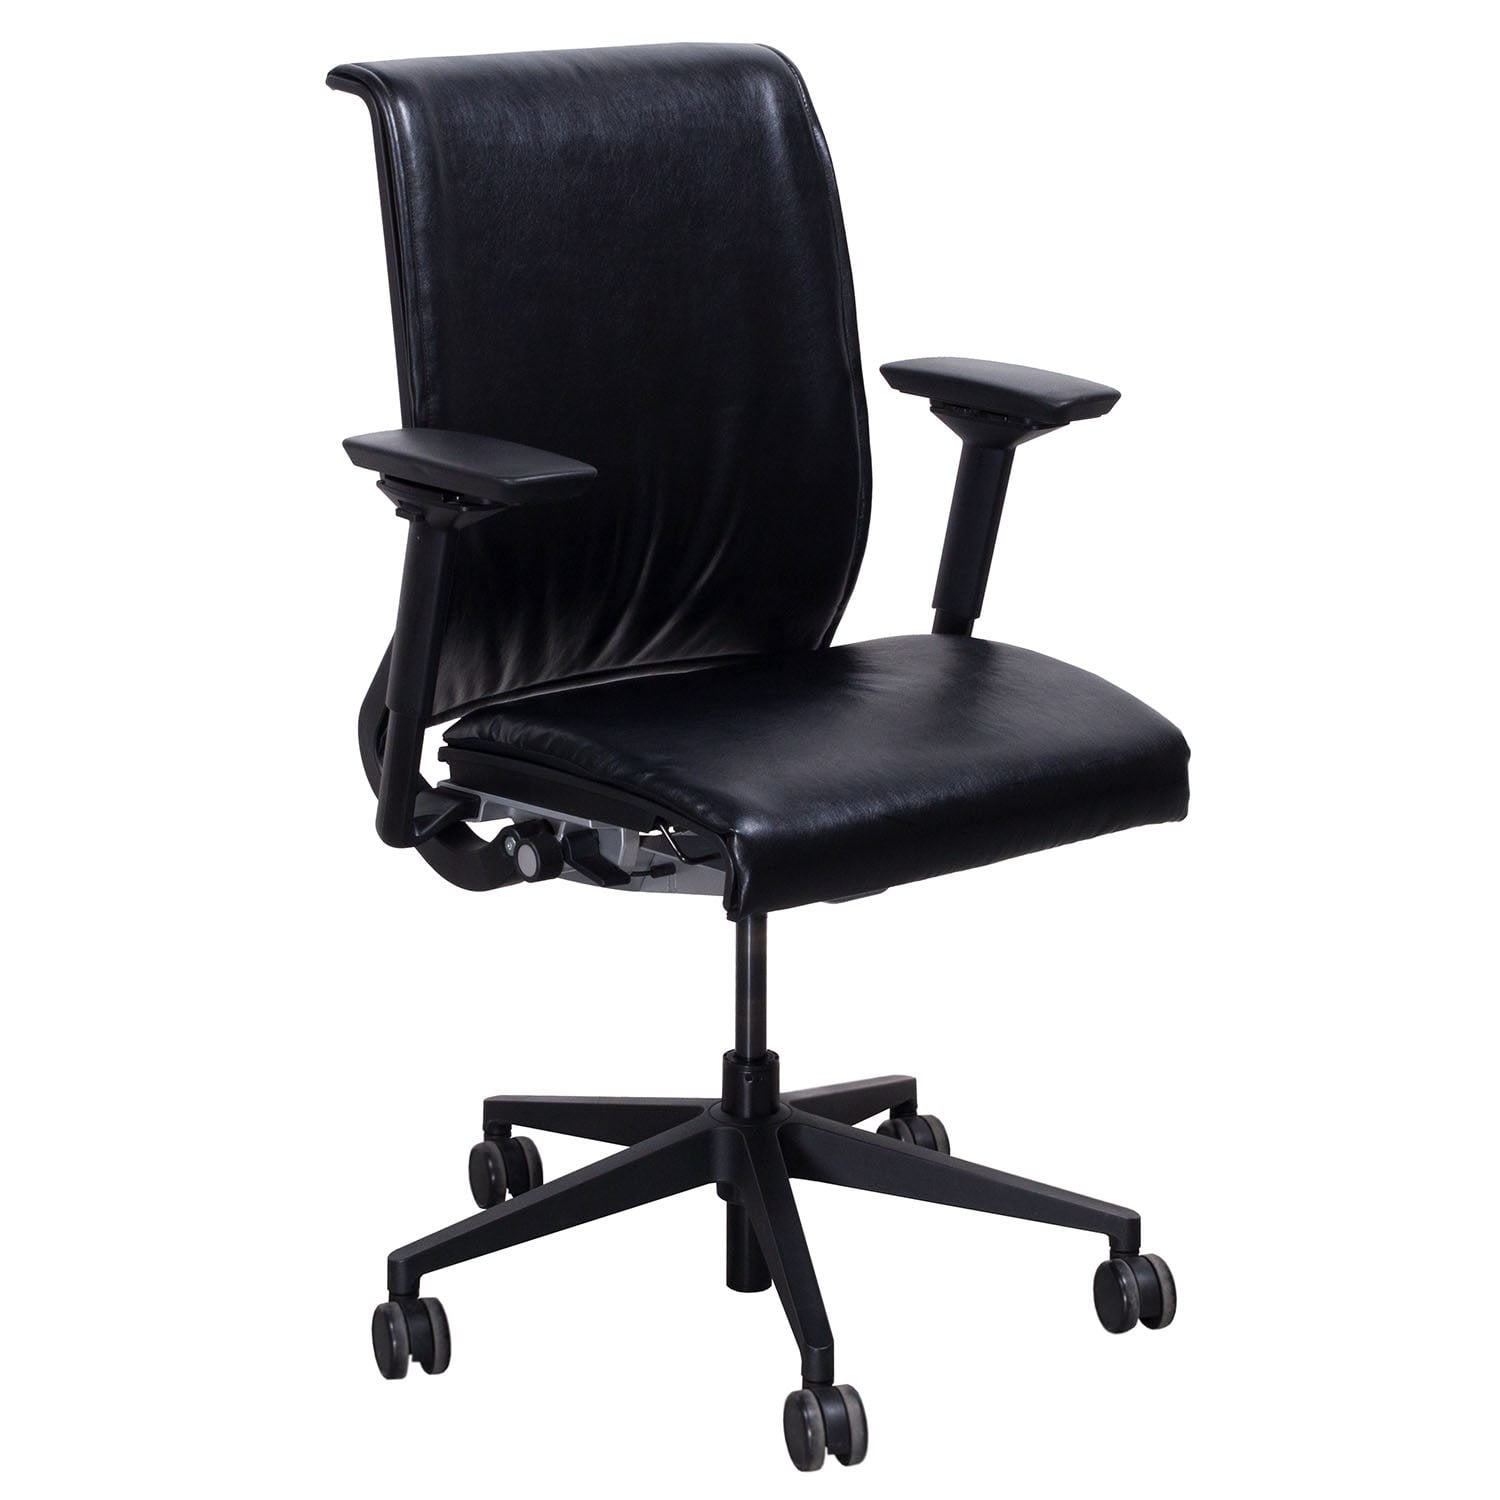 Steelcase Think Office Chair 3ds Max Steelcase Think Used Task Chair National Office Interiors And Liquidators Steelcase Think Used Task Chair Black National Office Interiors